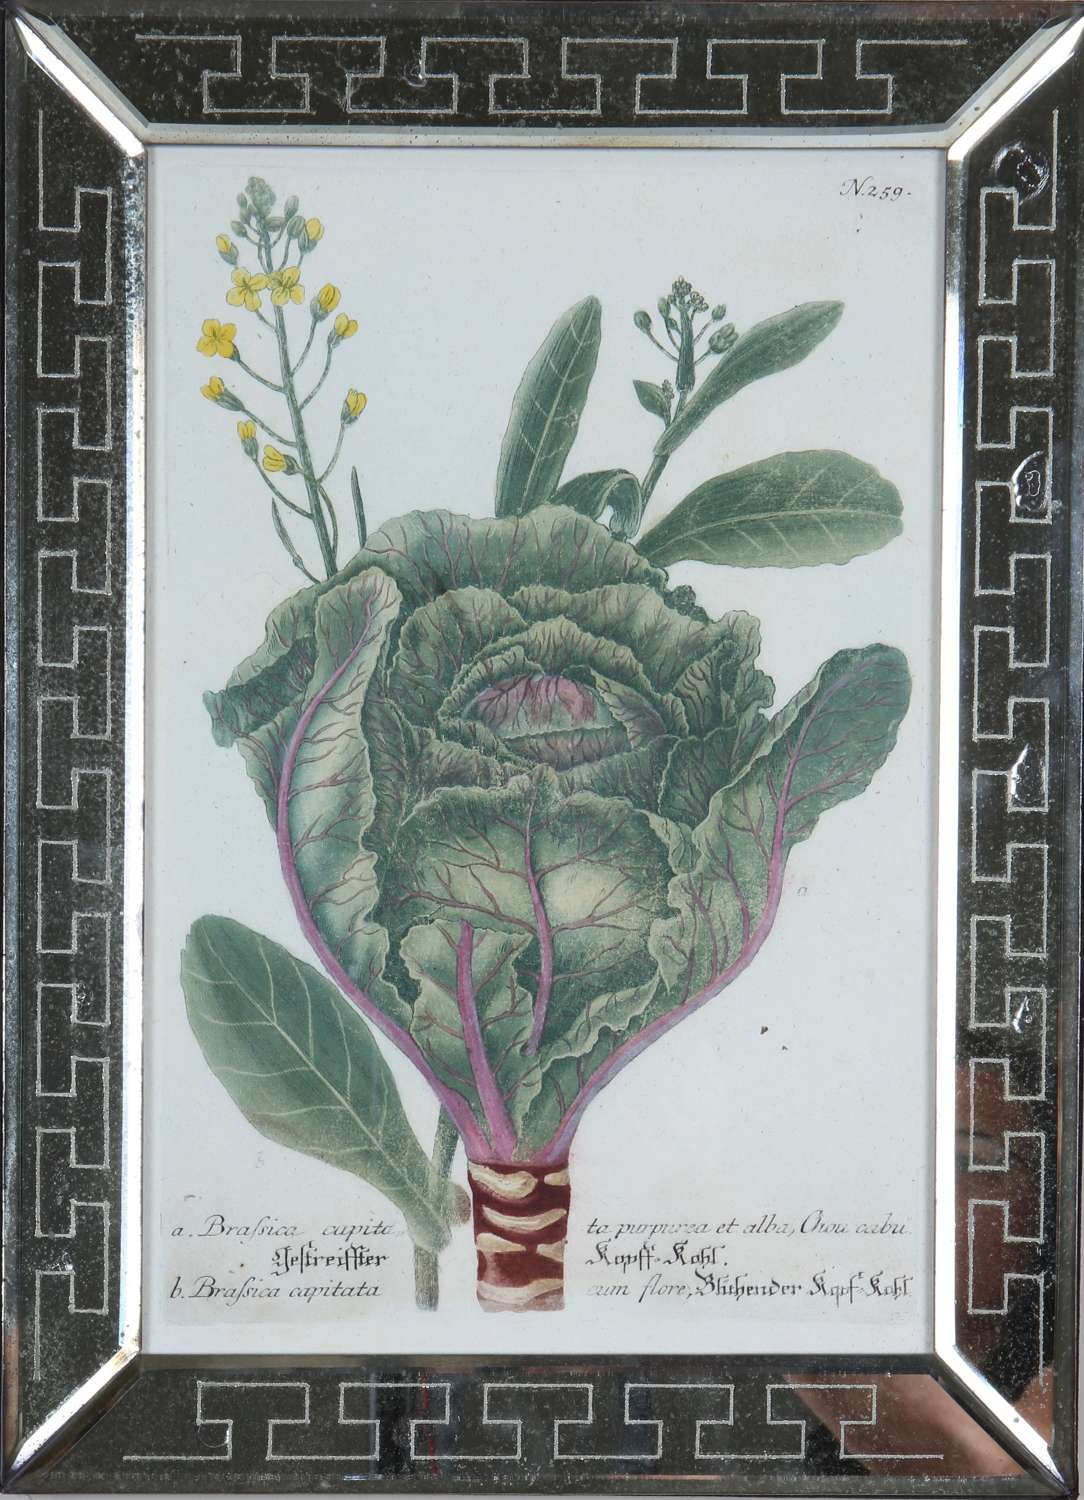 Johann Weinmann: c18th engravings of vegetables in mirror frames.